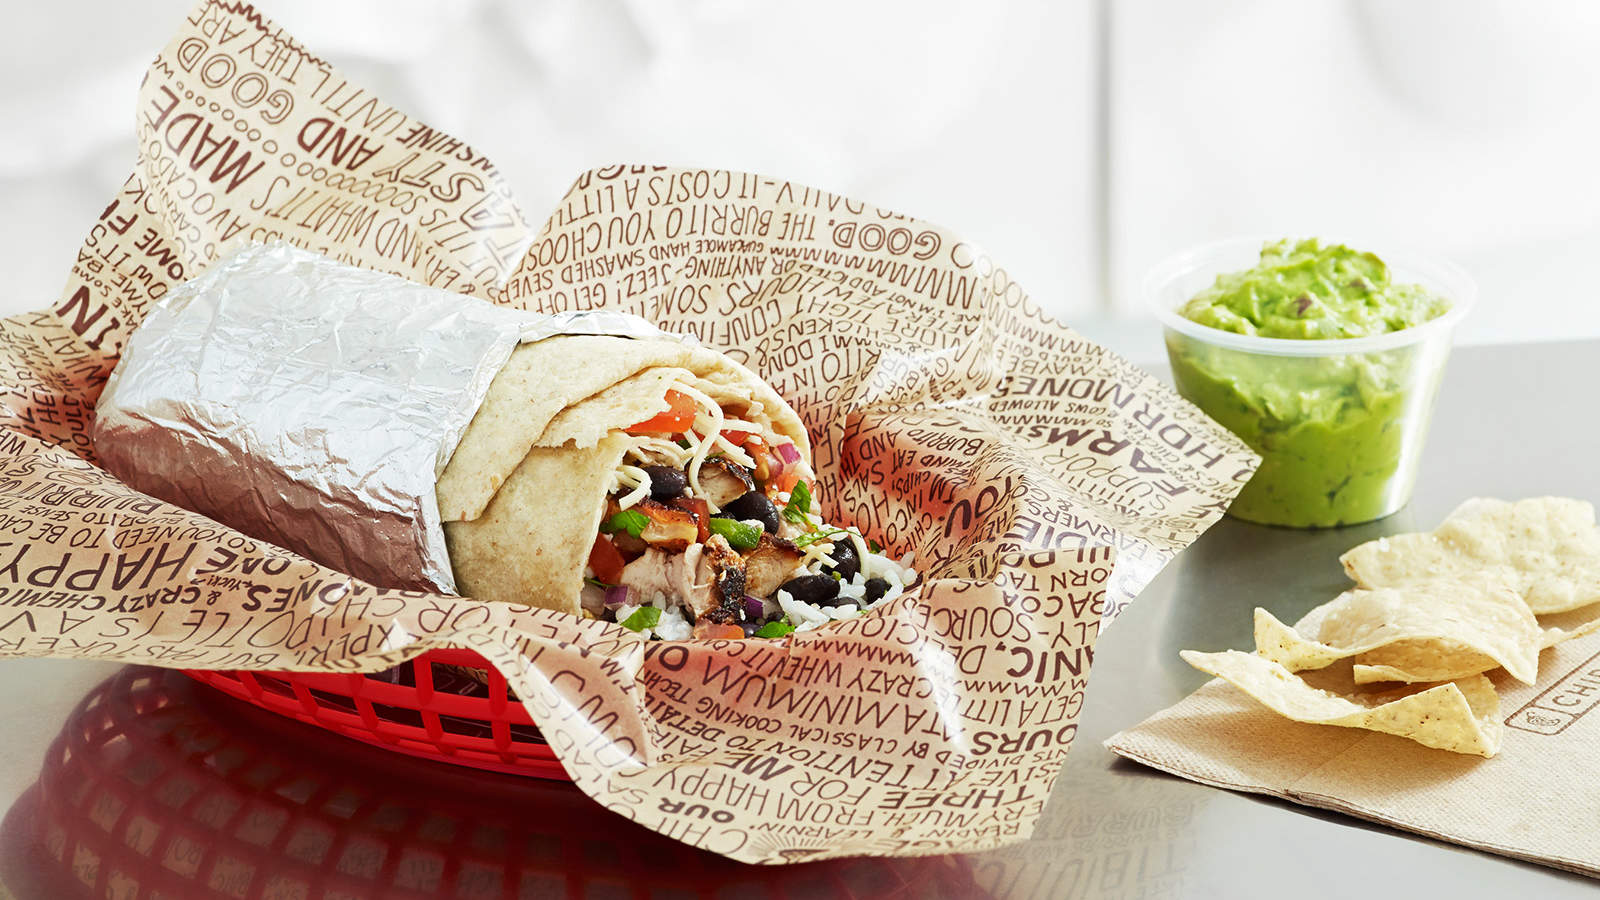 How Nurses Can Get Free Chipotle Burritos in June